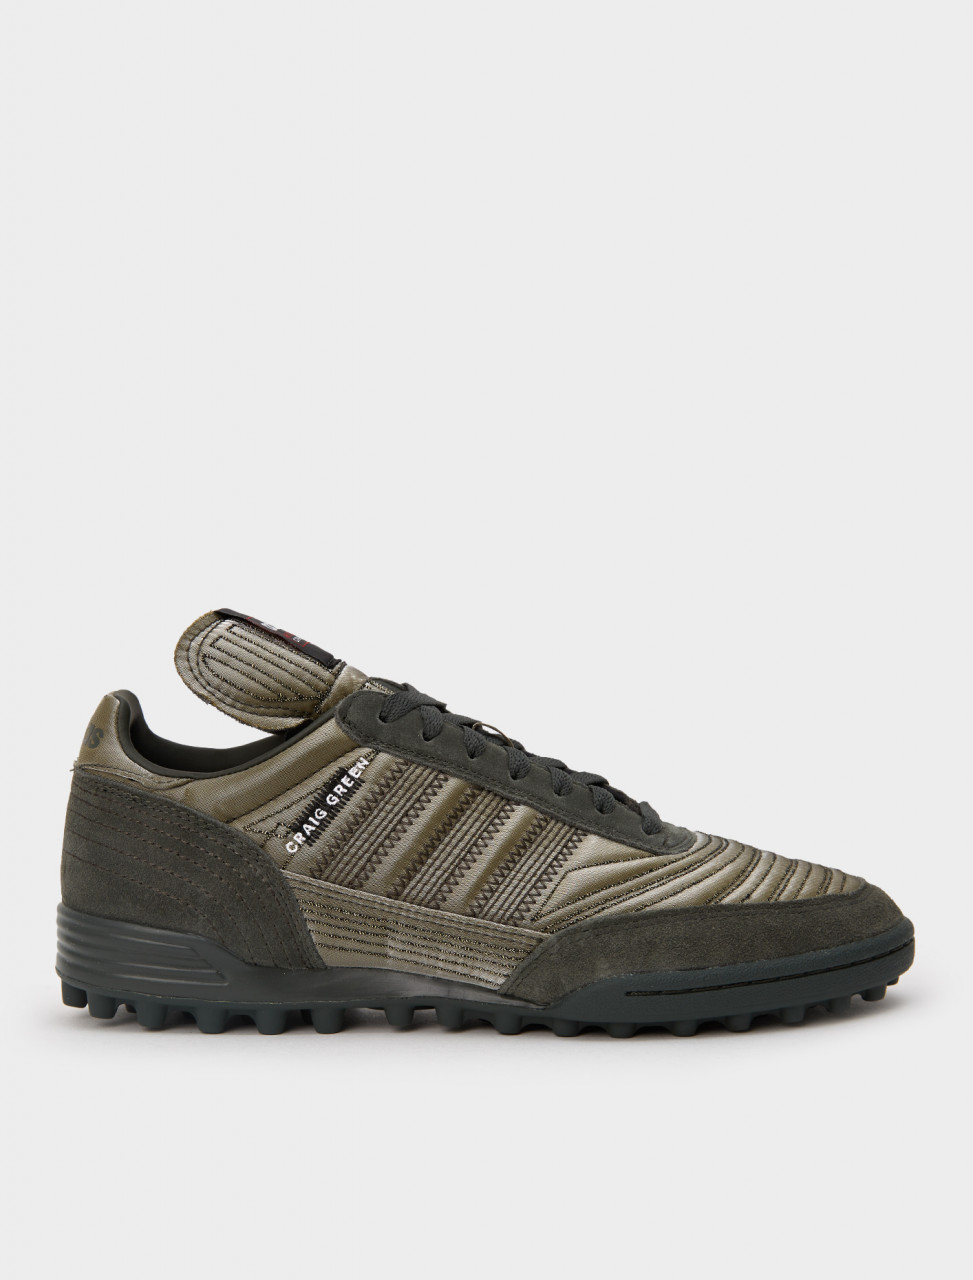 105-FY7695 ADIDAS CRAIG GREEN KONTUUR III LEGEND EARTH CORE BLACK